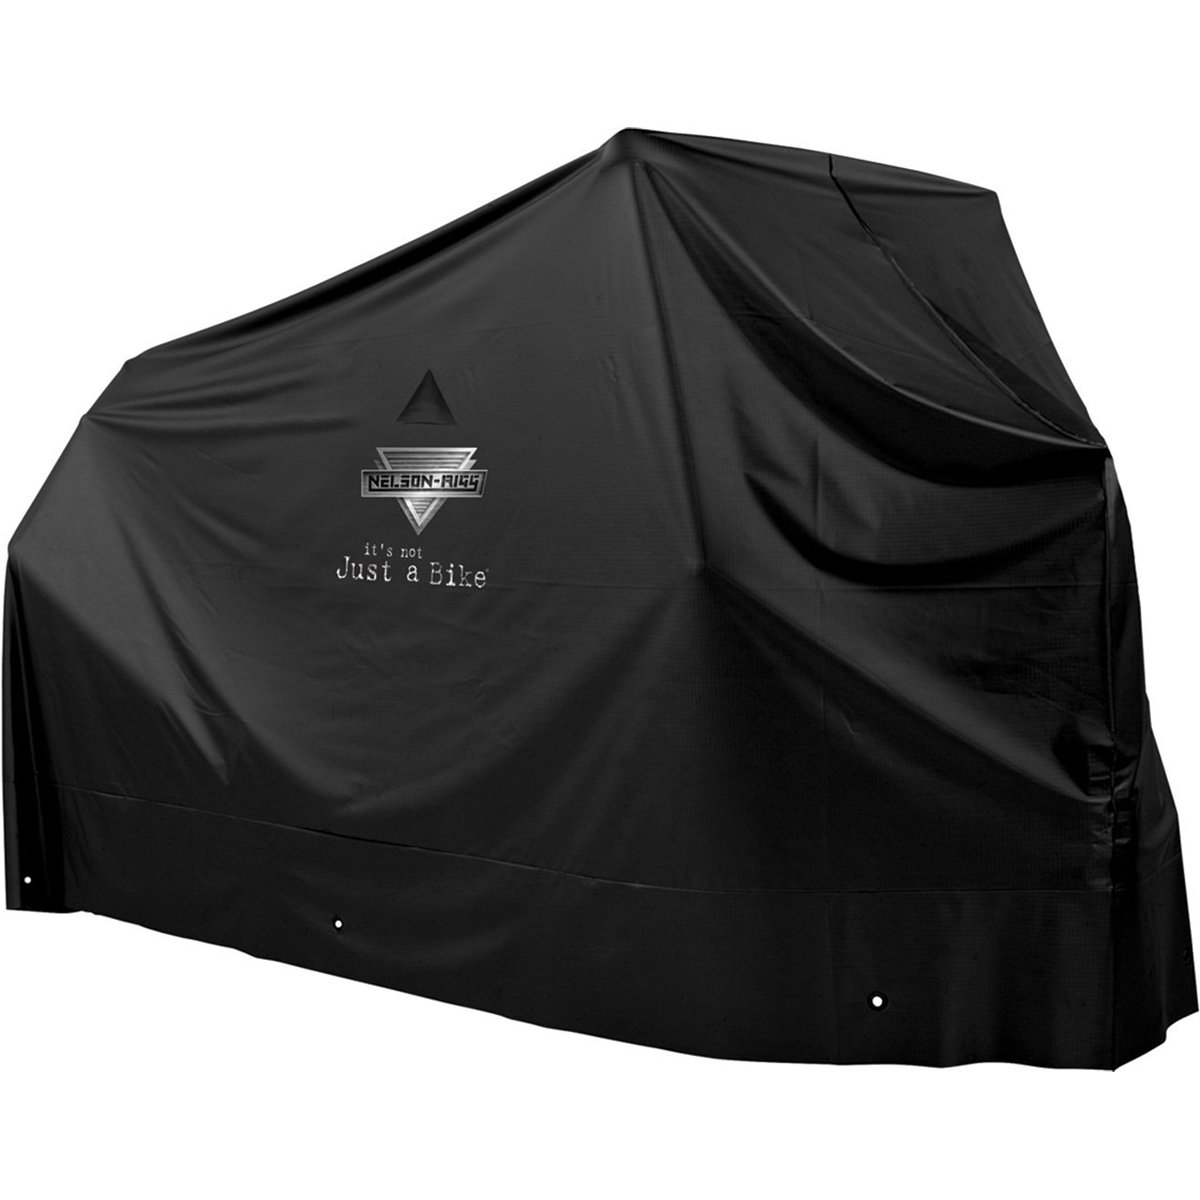 Nelson-Rigg MC-900-03-LG Econo Motorcycle Cover, All Weather Protection, 100% Waterproof, UV, Air Vents, Grommets, Large Fits most Sportbikes and Cruiser motorcycles